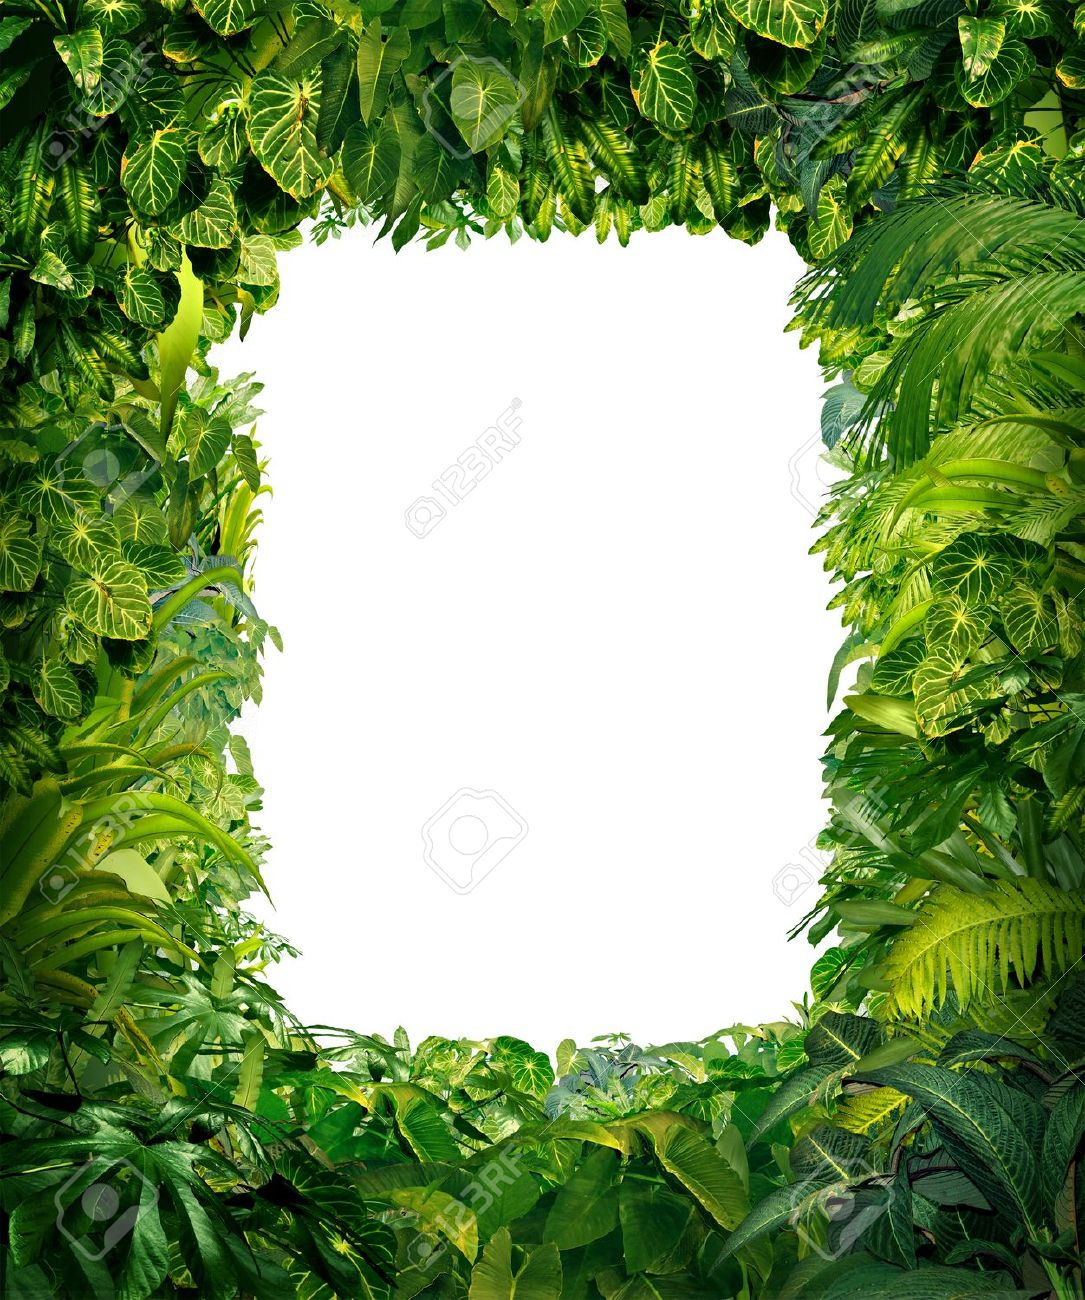 Jungle Border Blank Frame With Rich Tropical Green Plants As.